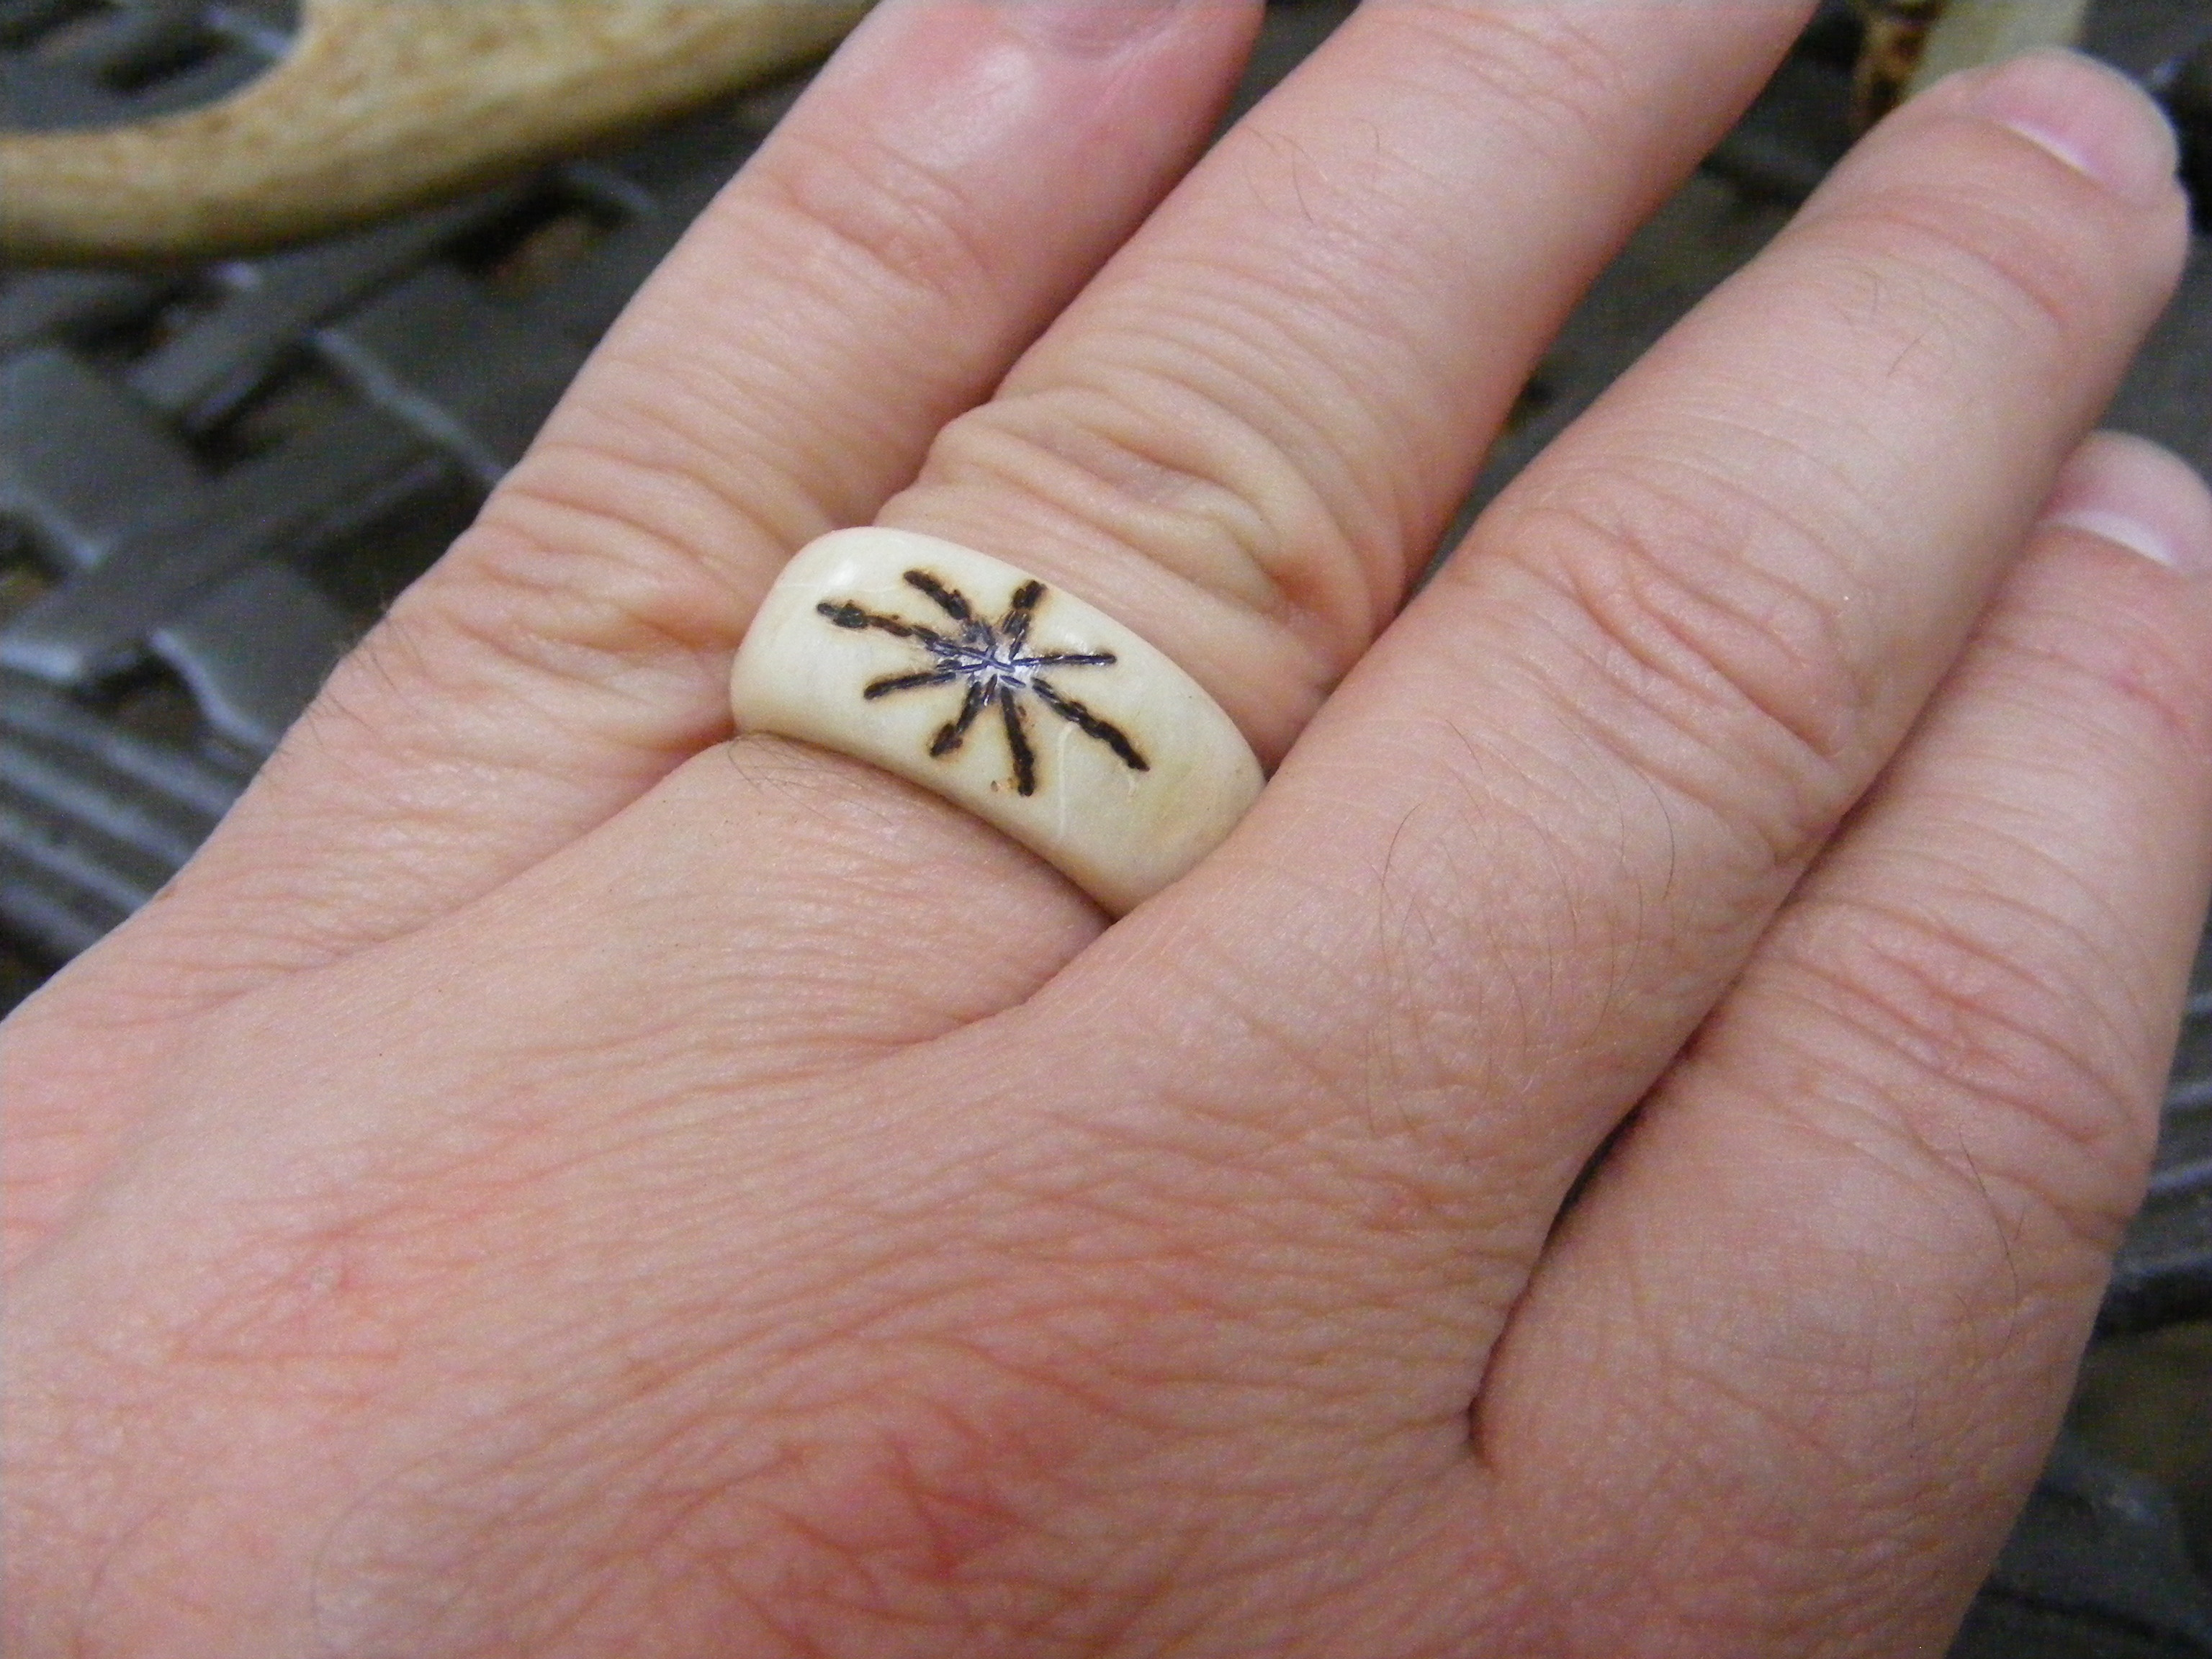 Antler Rings and How to Make Them